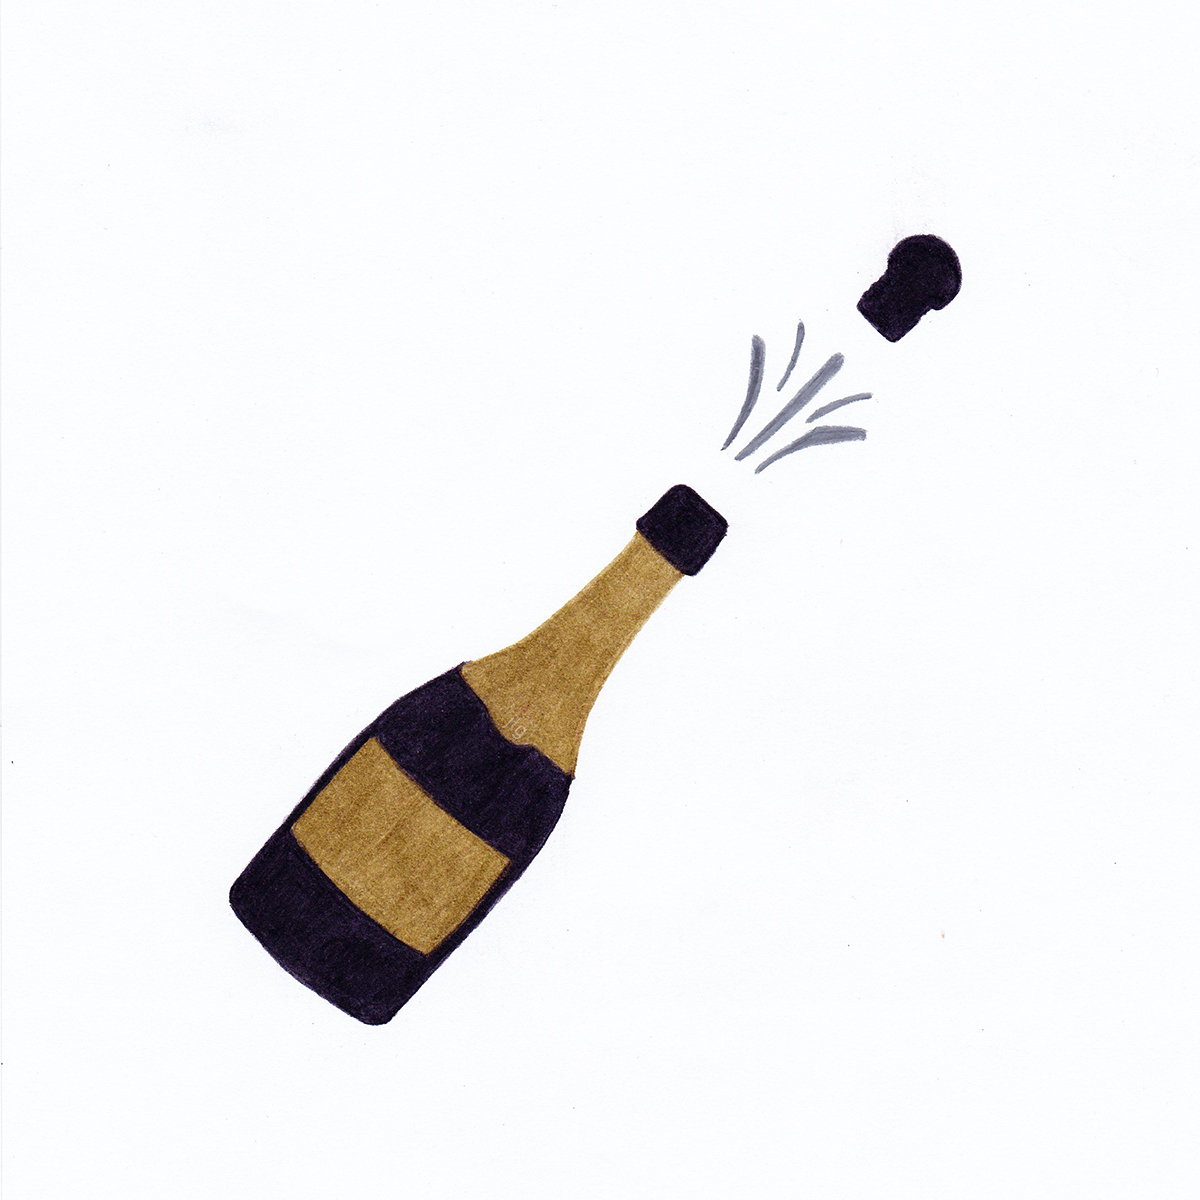 2018_Fall_Illustrations_Champagne.jpg